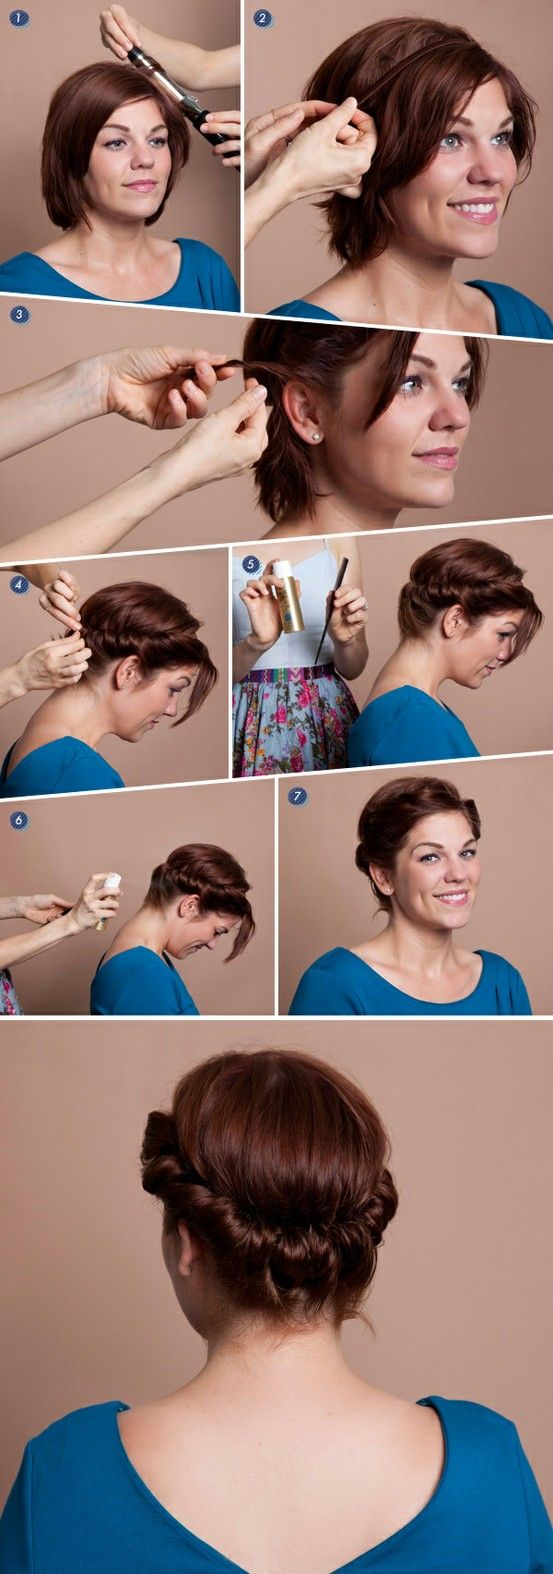 this is a how-to for people like me with very short hair. it's really effective and can be configured however you like